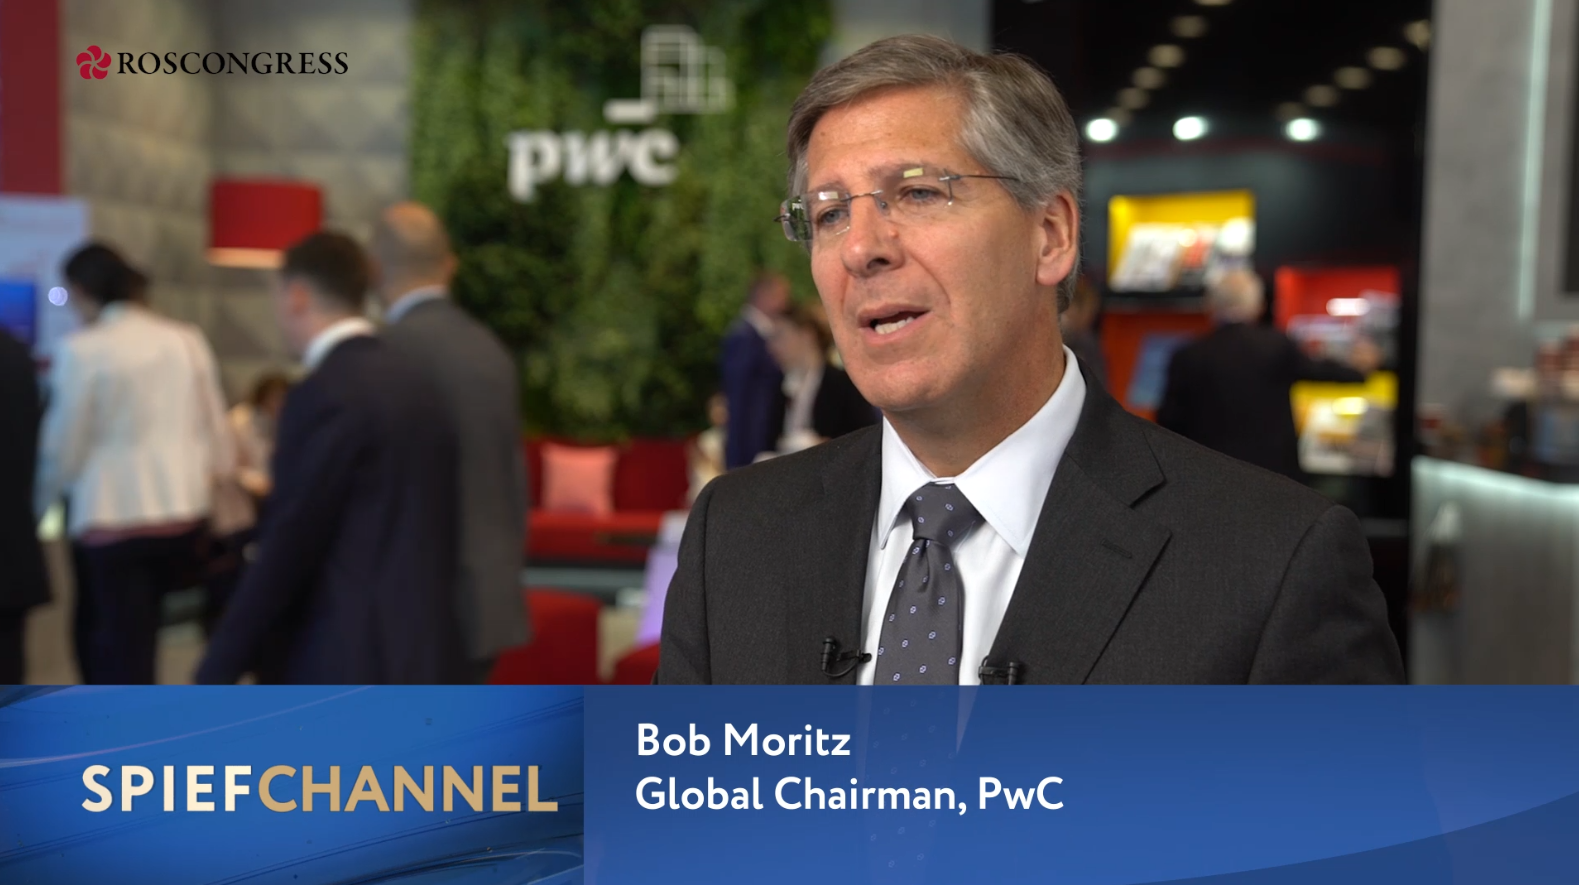 Bob Moritz, Global Chairman, PwC Global